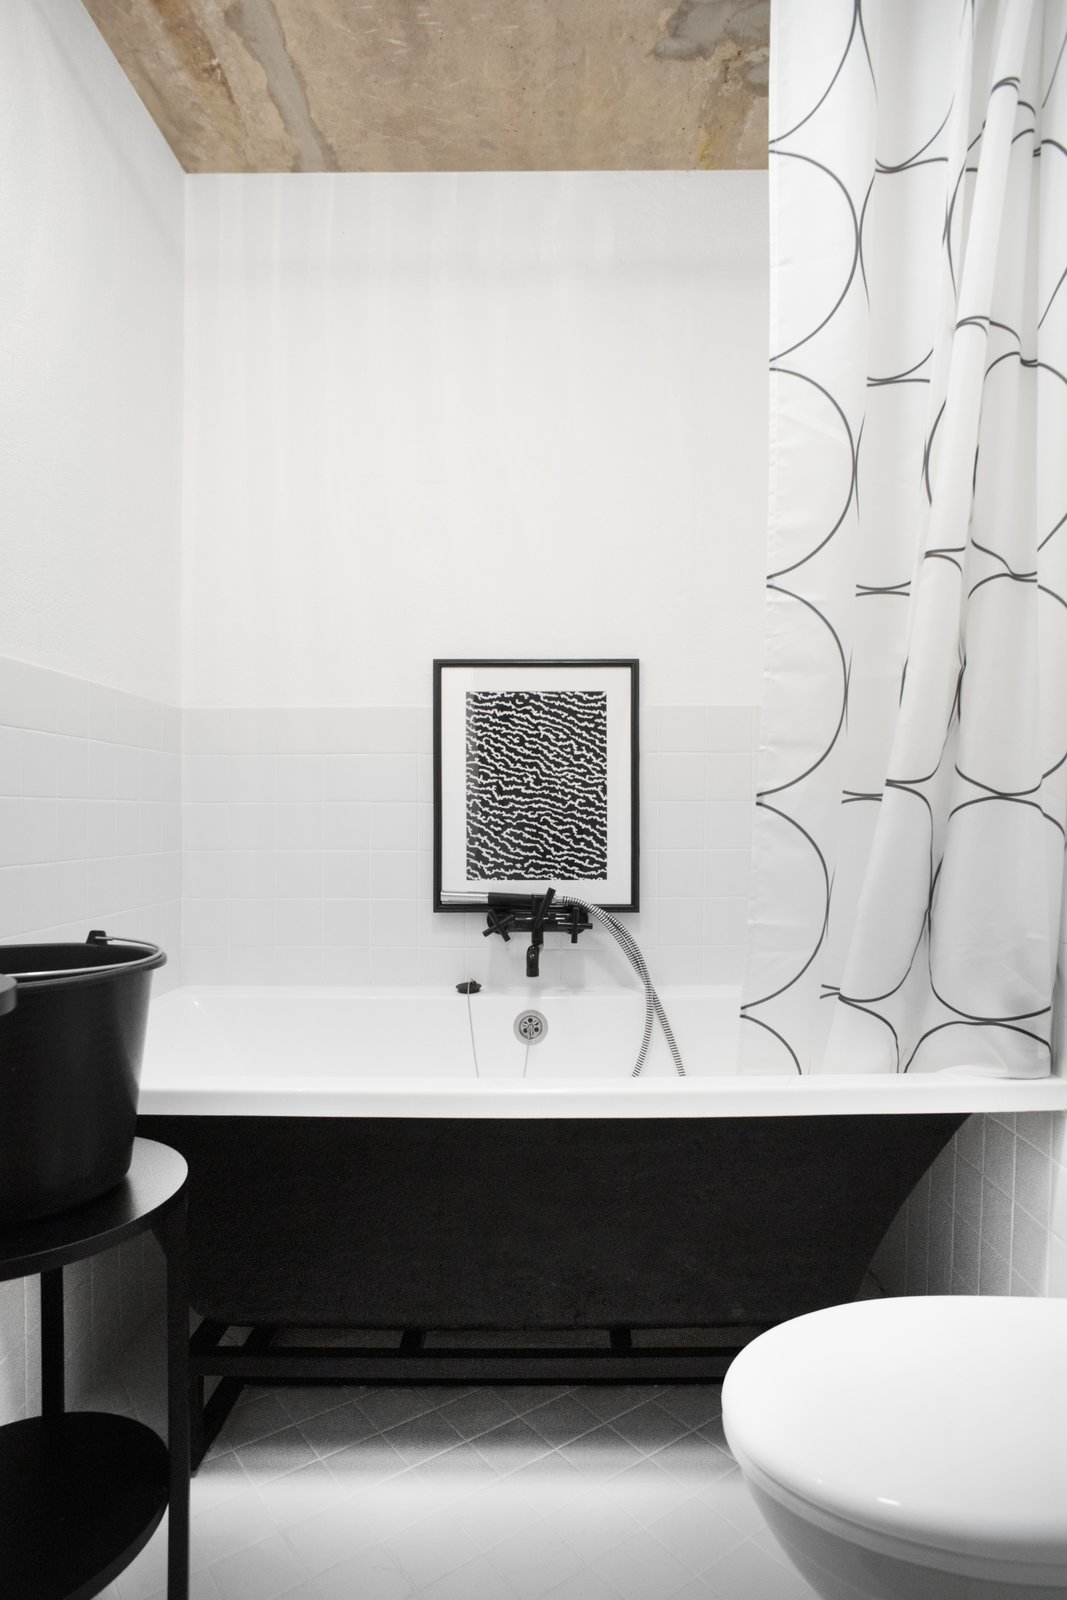 The approximately 4 inch by 4 inch white ceramic tile flooring is typical of Soviet-era bathrooms. Vorontsov sought to update the utilitarian style of the original bathroom with Kludi Bozz fixtures (which he painted black himself) and a graphic IKEA shower curtain.  Soviet Intelligentsia by Caroline Wallis